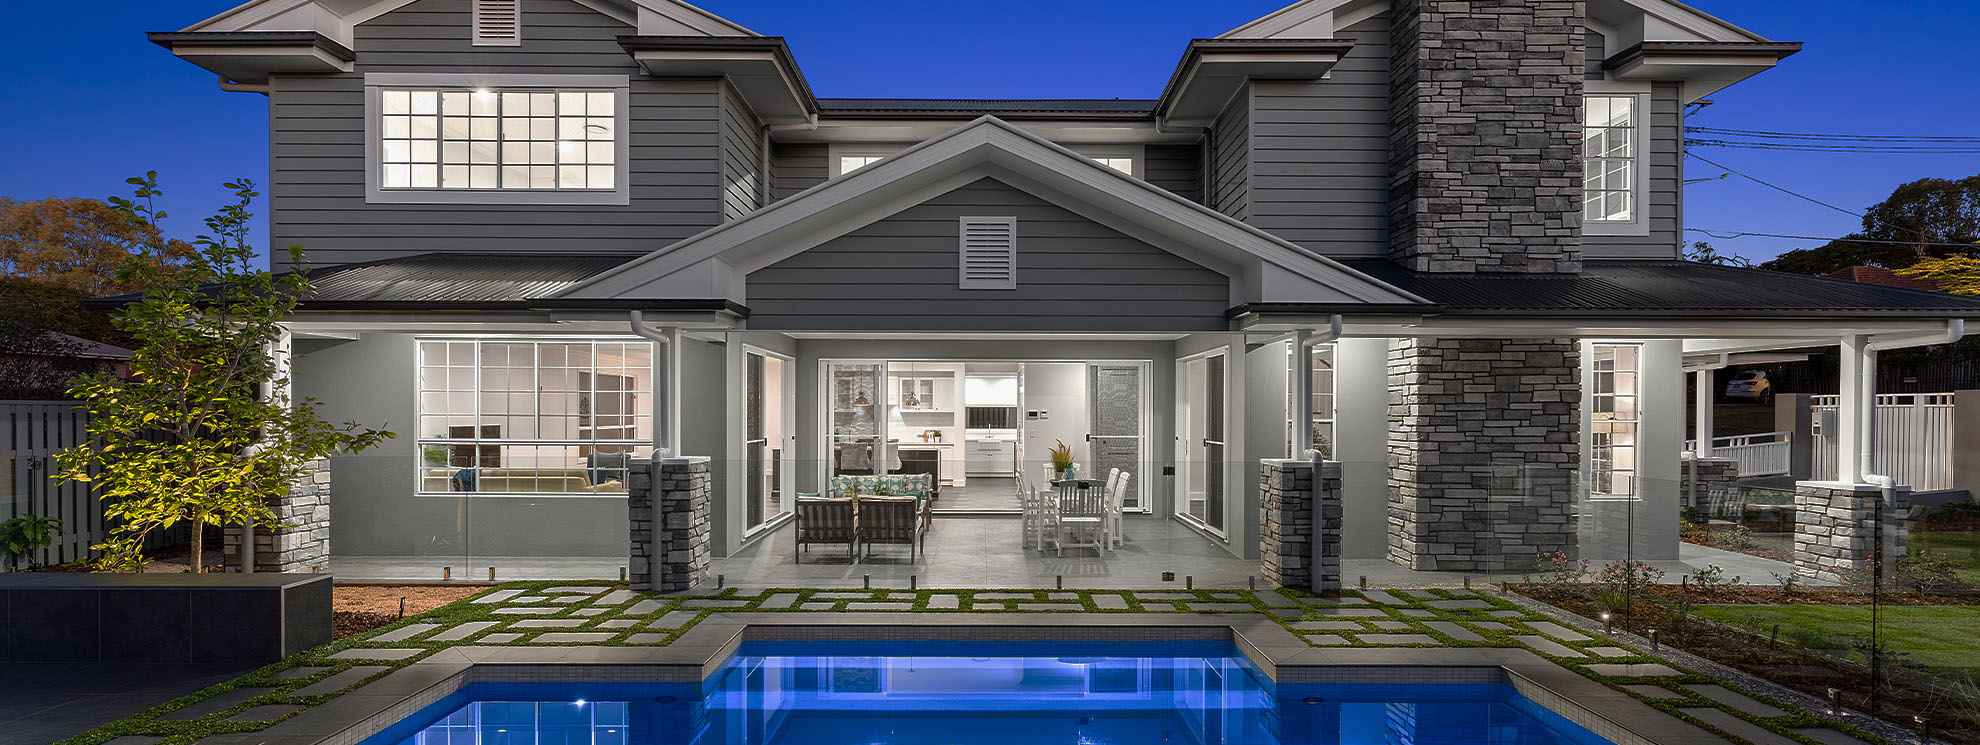 How to design your custom home in 2021